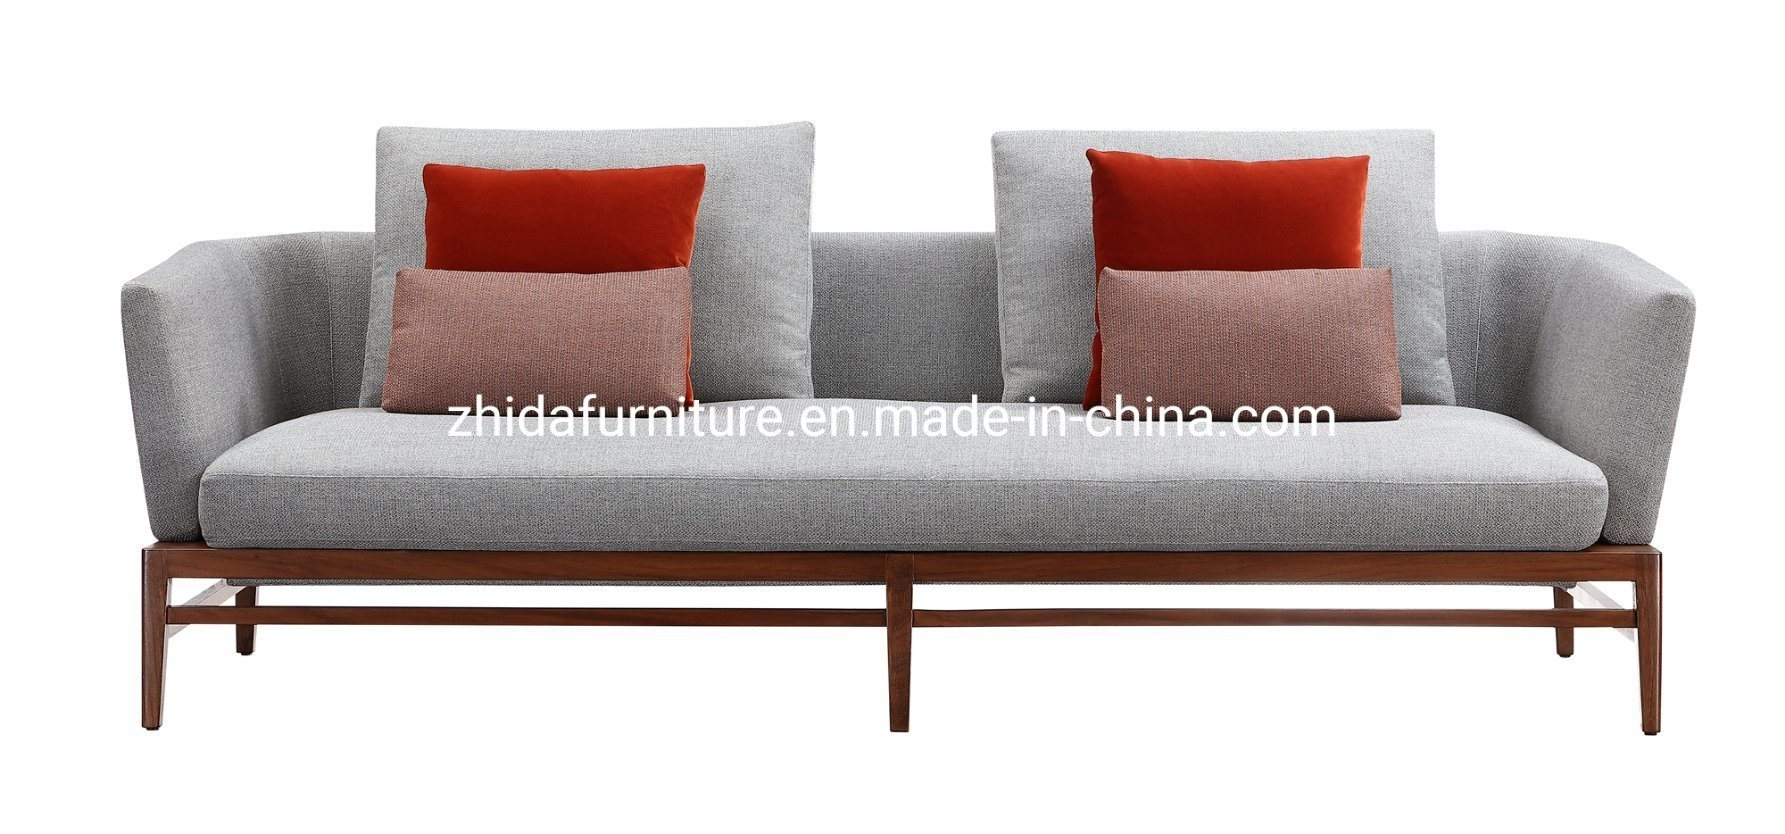 - China Foshan Living Room Modern Fabric Leather Sofa Furniture